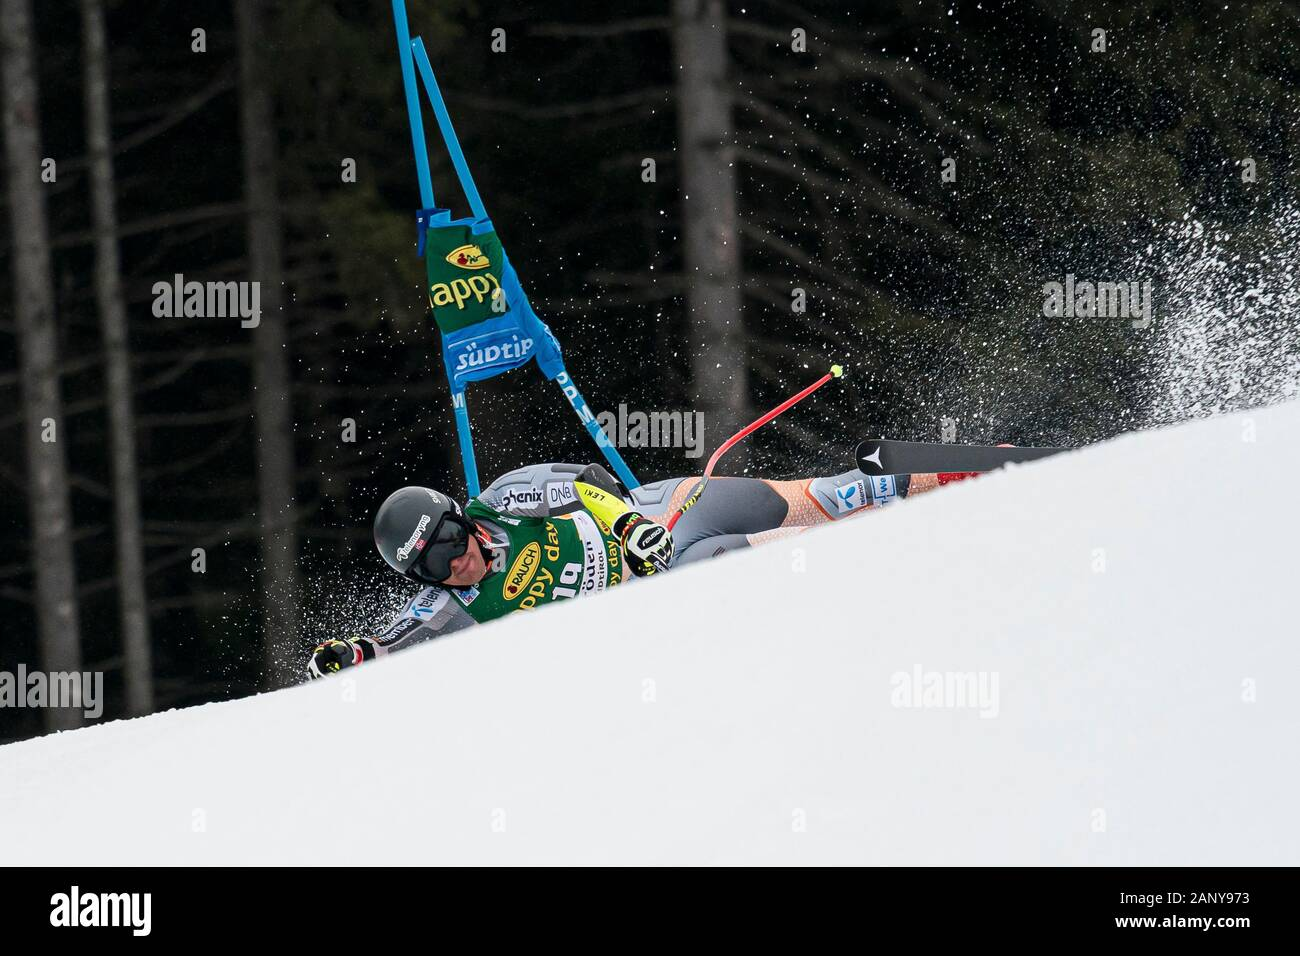 Val Gardena, Italy 20 December 2019. SEJERSTED Adrian Smiseth (Nor) competing in the Audi Fis Alpine Skiing World Cup Men's Super-G Race  on the Saslo Stock Photo